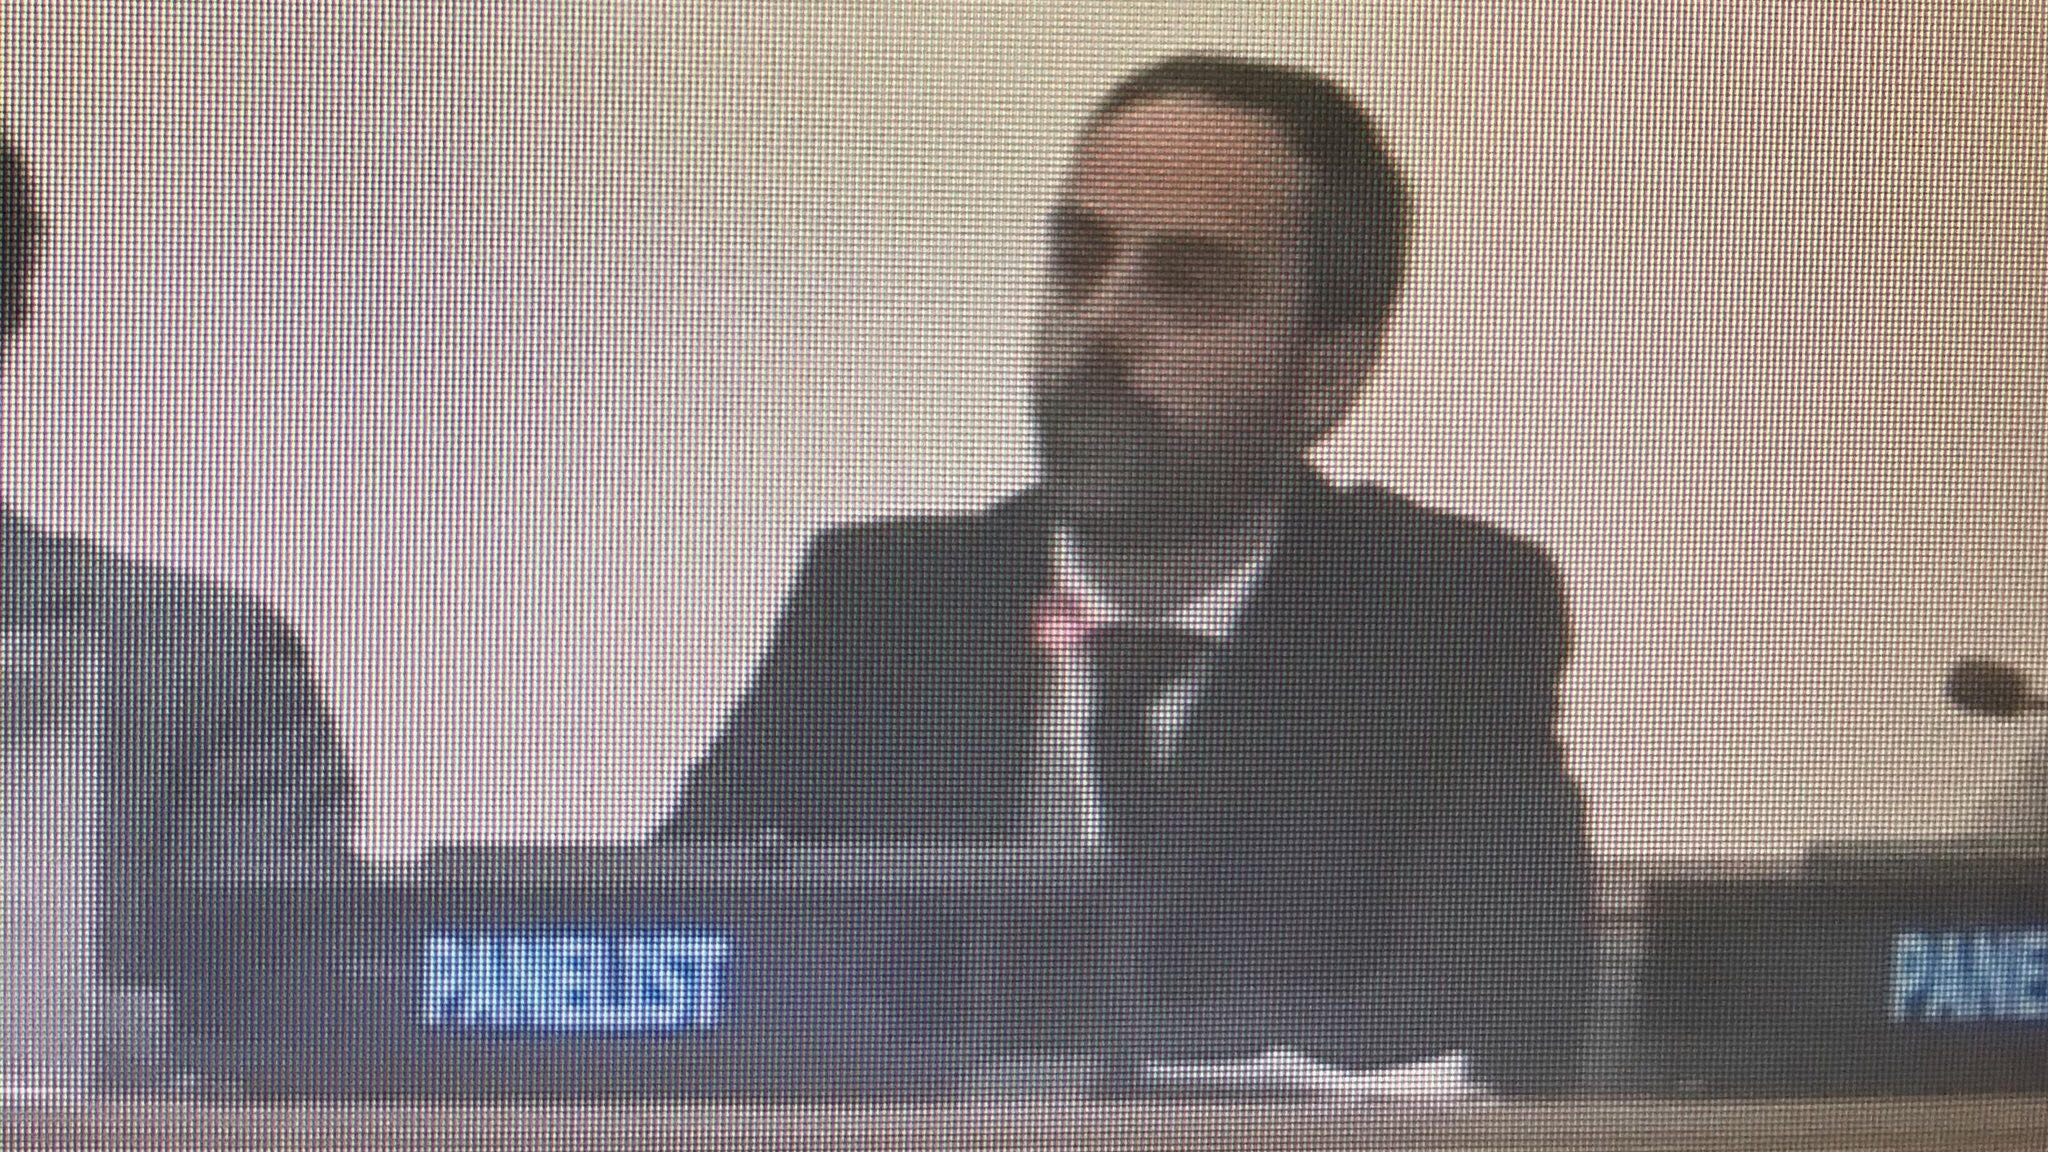 Intervention LDAC Executive Secretary as panellist at United Nations, New York May 2019